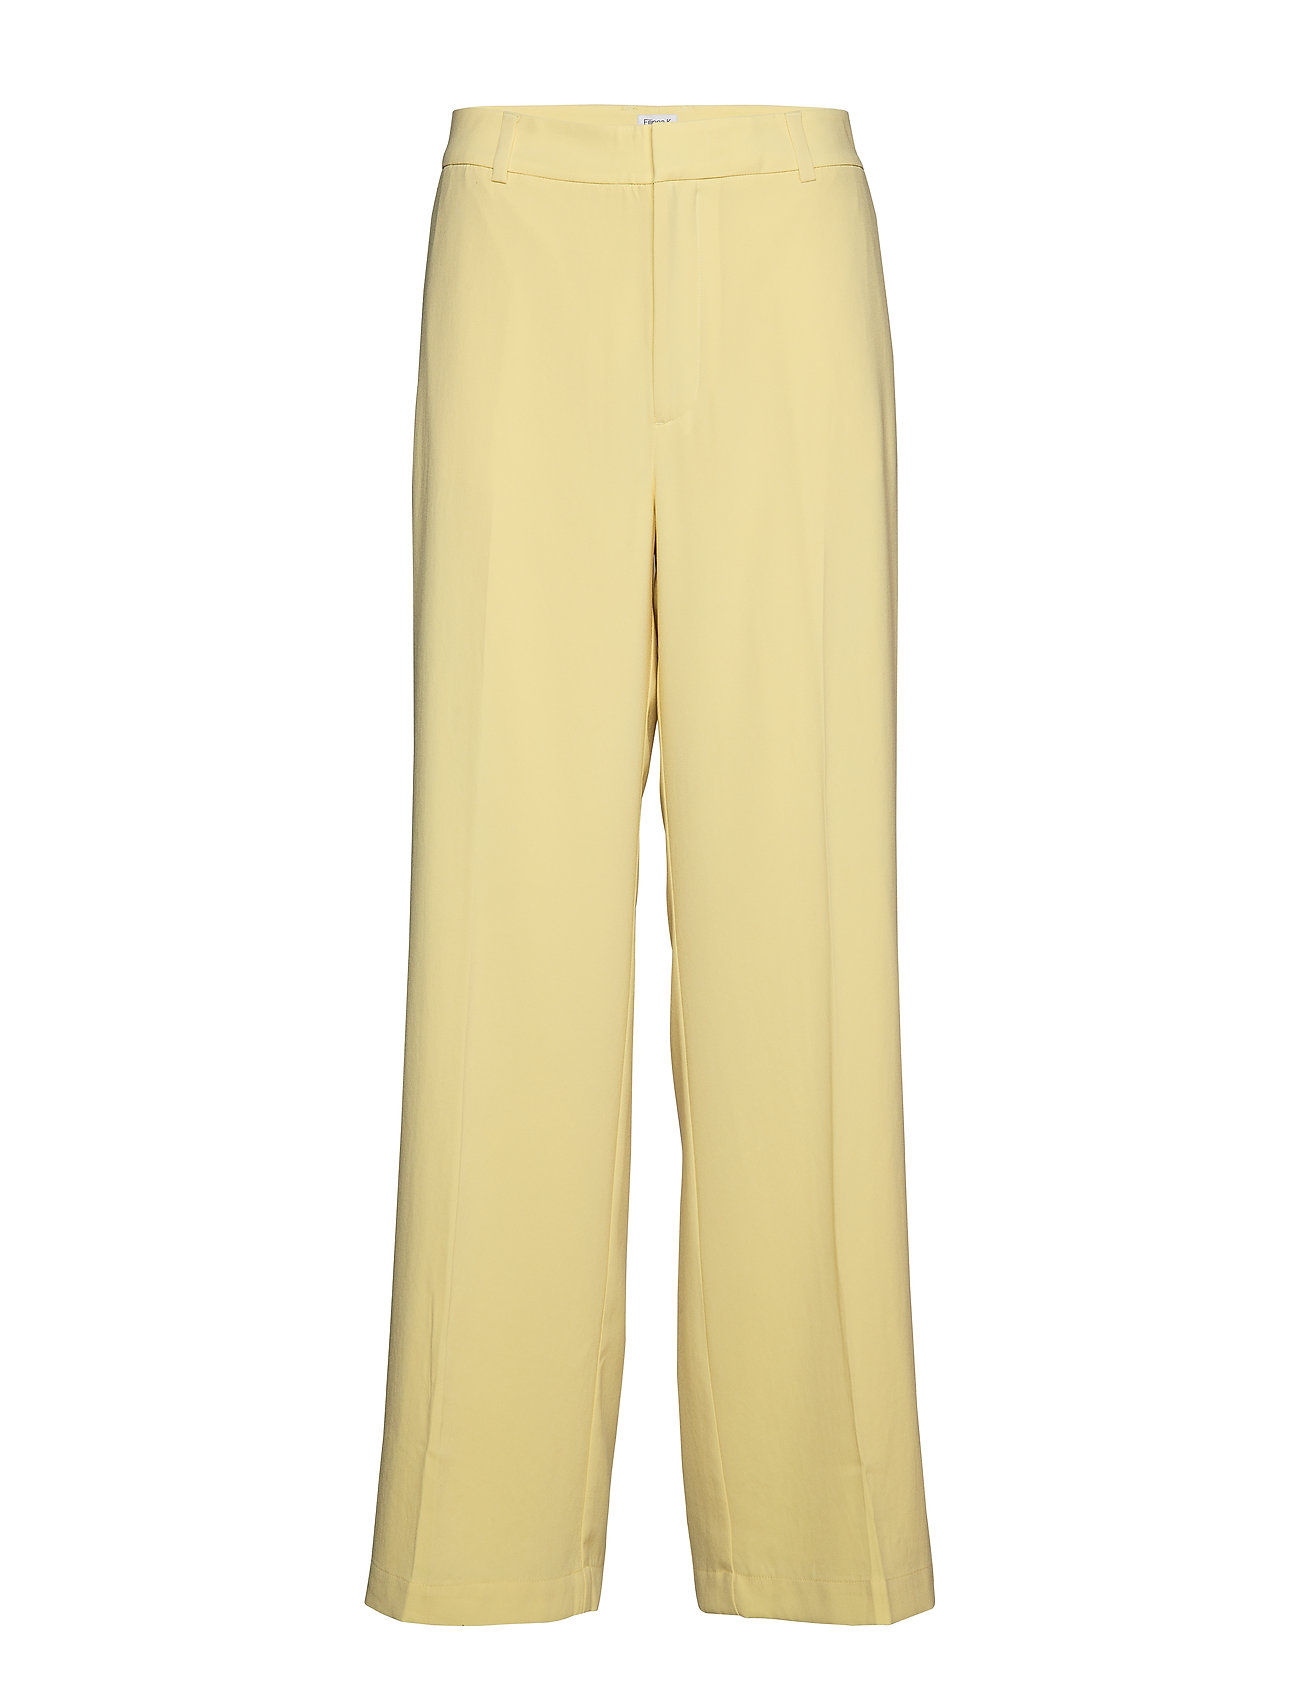 Filippa K Hutton Crepe Trouser - WAX